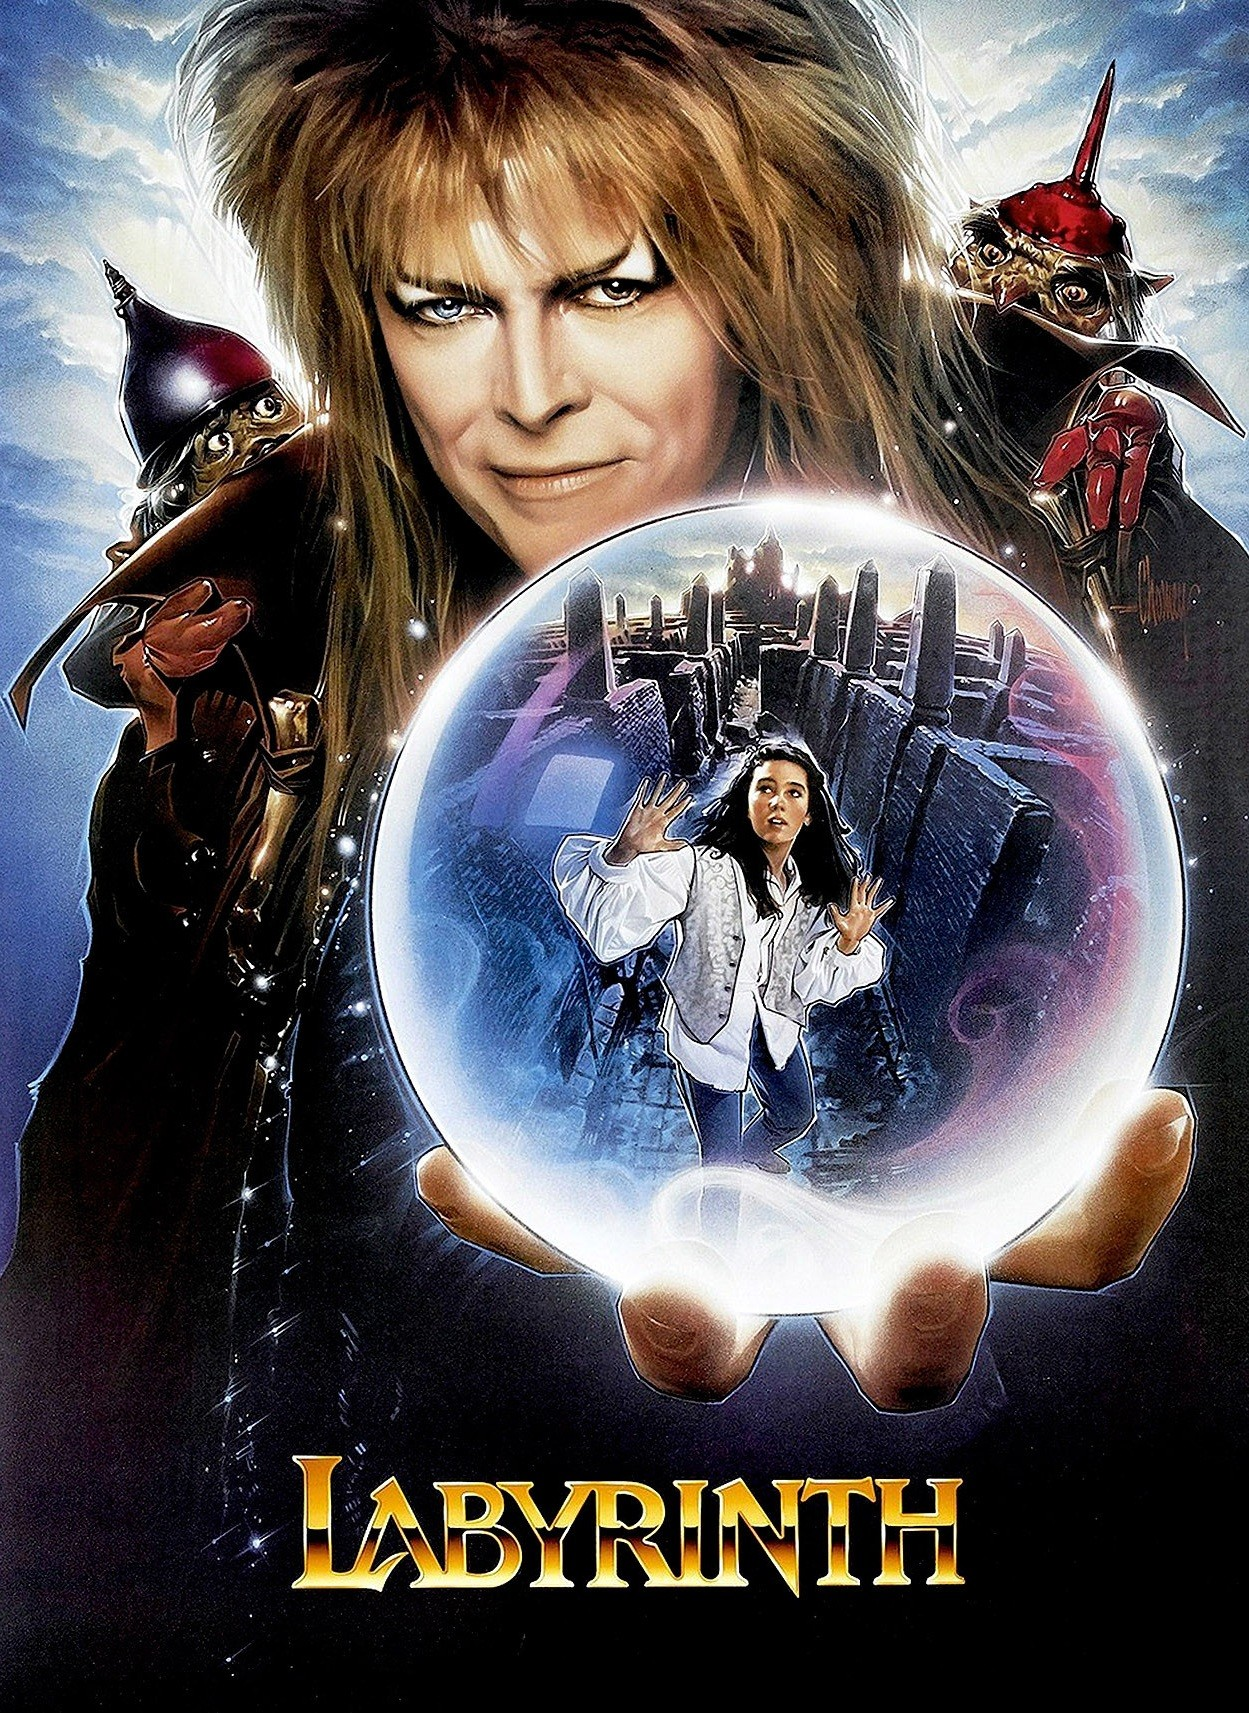 labyrinth-poster-image-credit-manilovefilms_com_.jpg